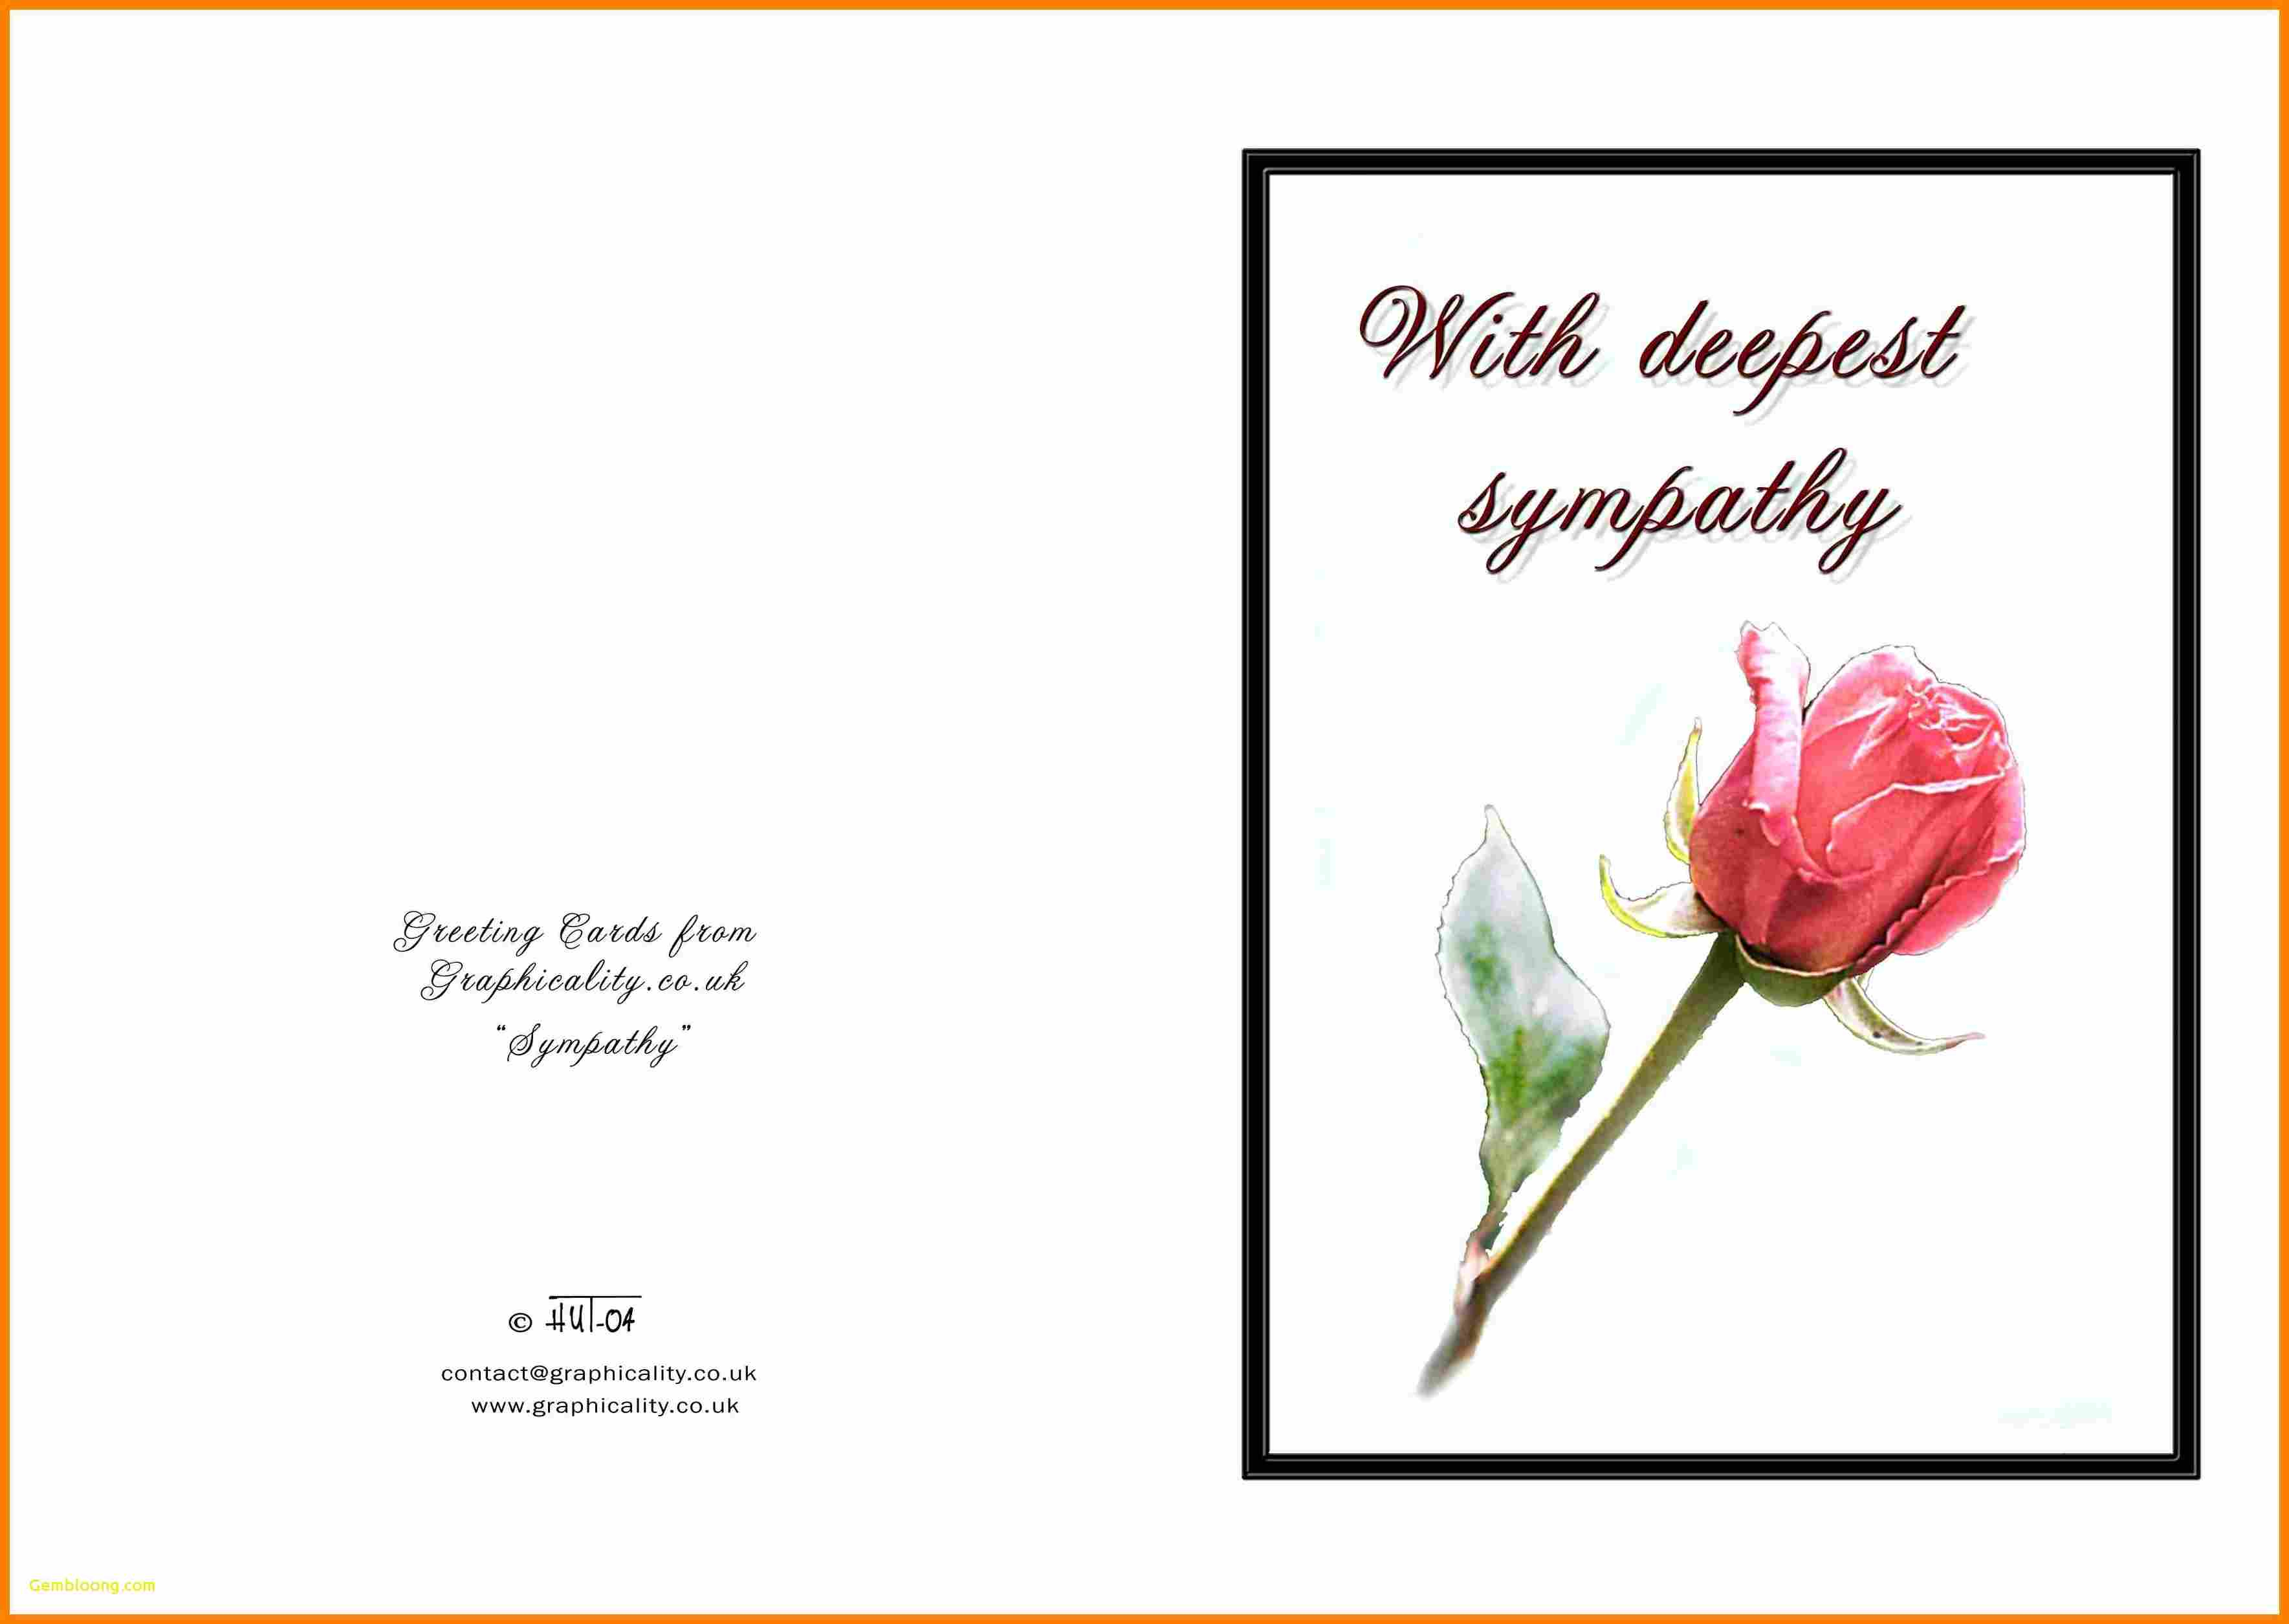 98+ Condolence Messages And Sincere Sympathy Sayings For Loss - Free Printable Sympathy Verses